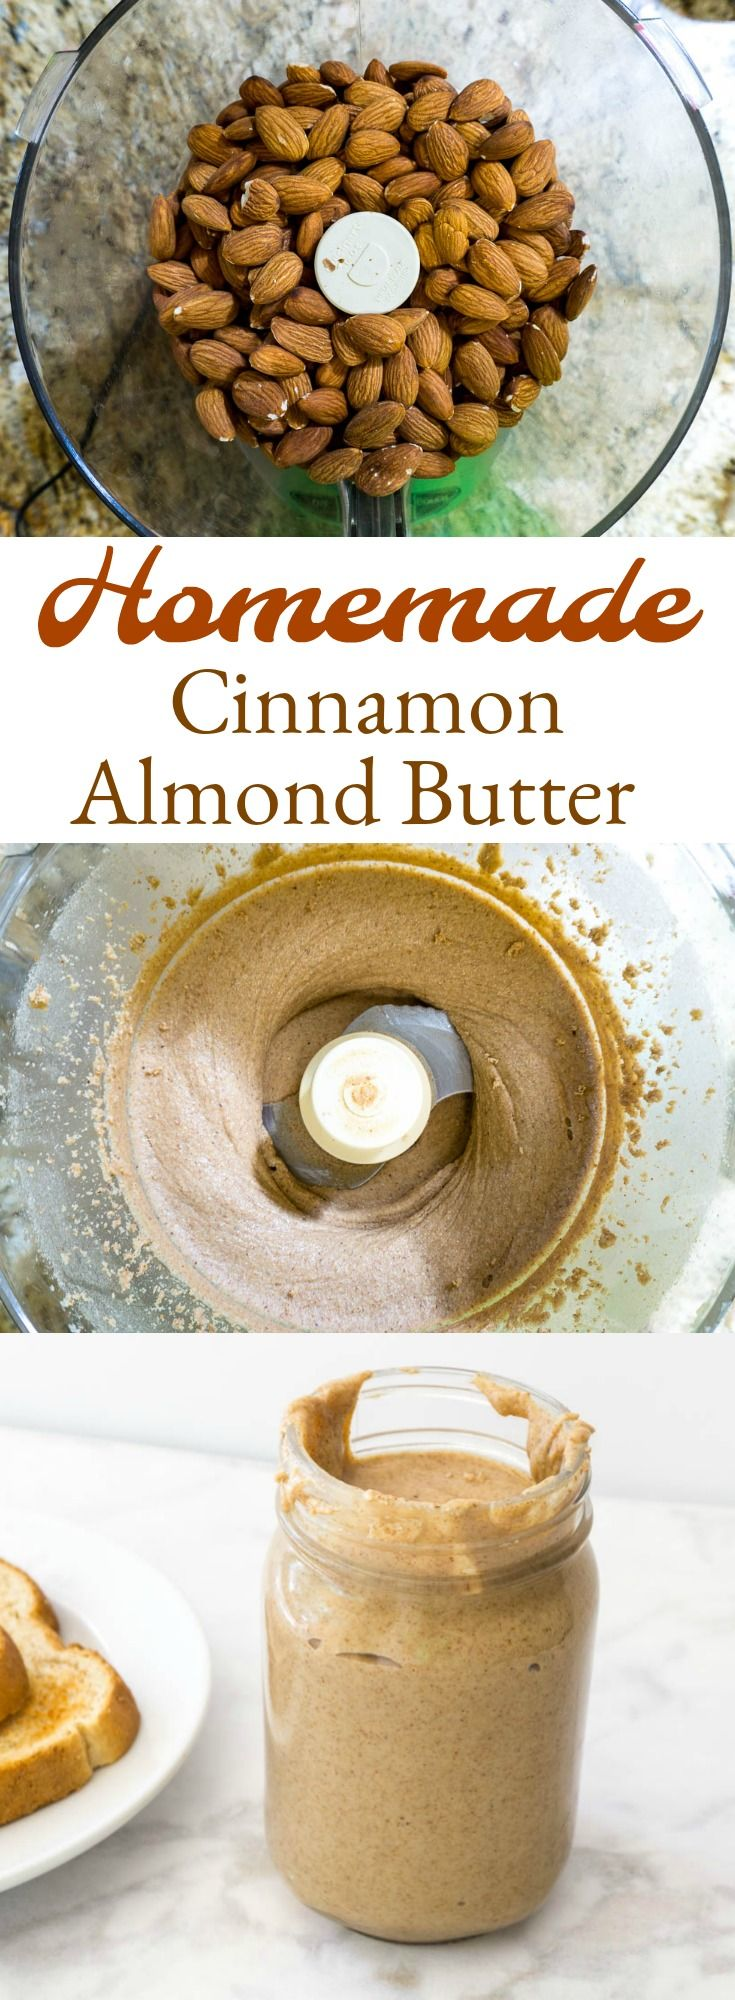 Homemade Cinnamon Almond Butter is incredibly easy and makes a full jar that'll lat you a month. Put it in smoothies or on toast with honey.